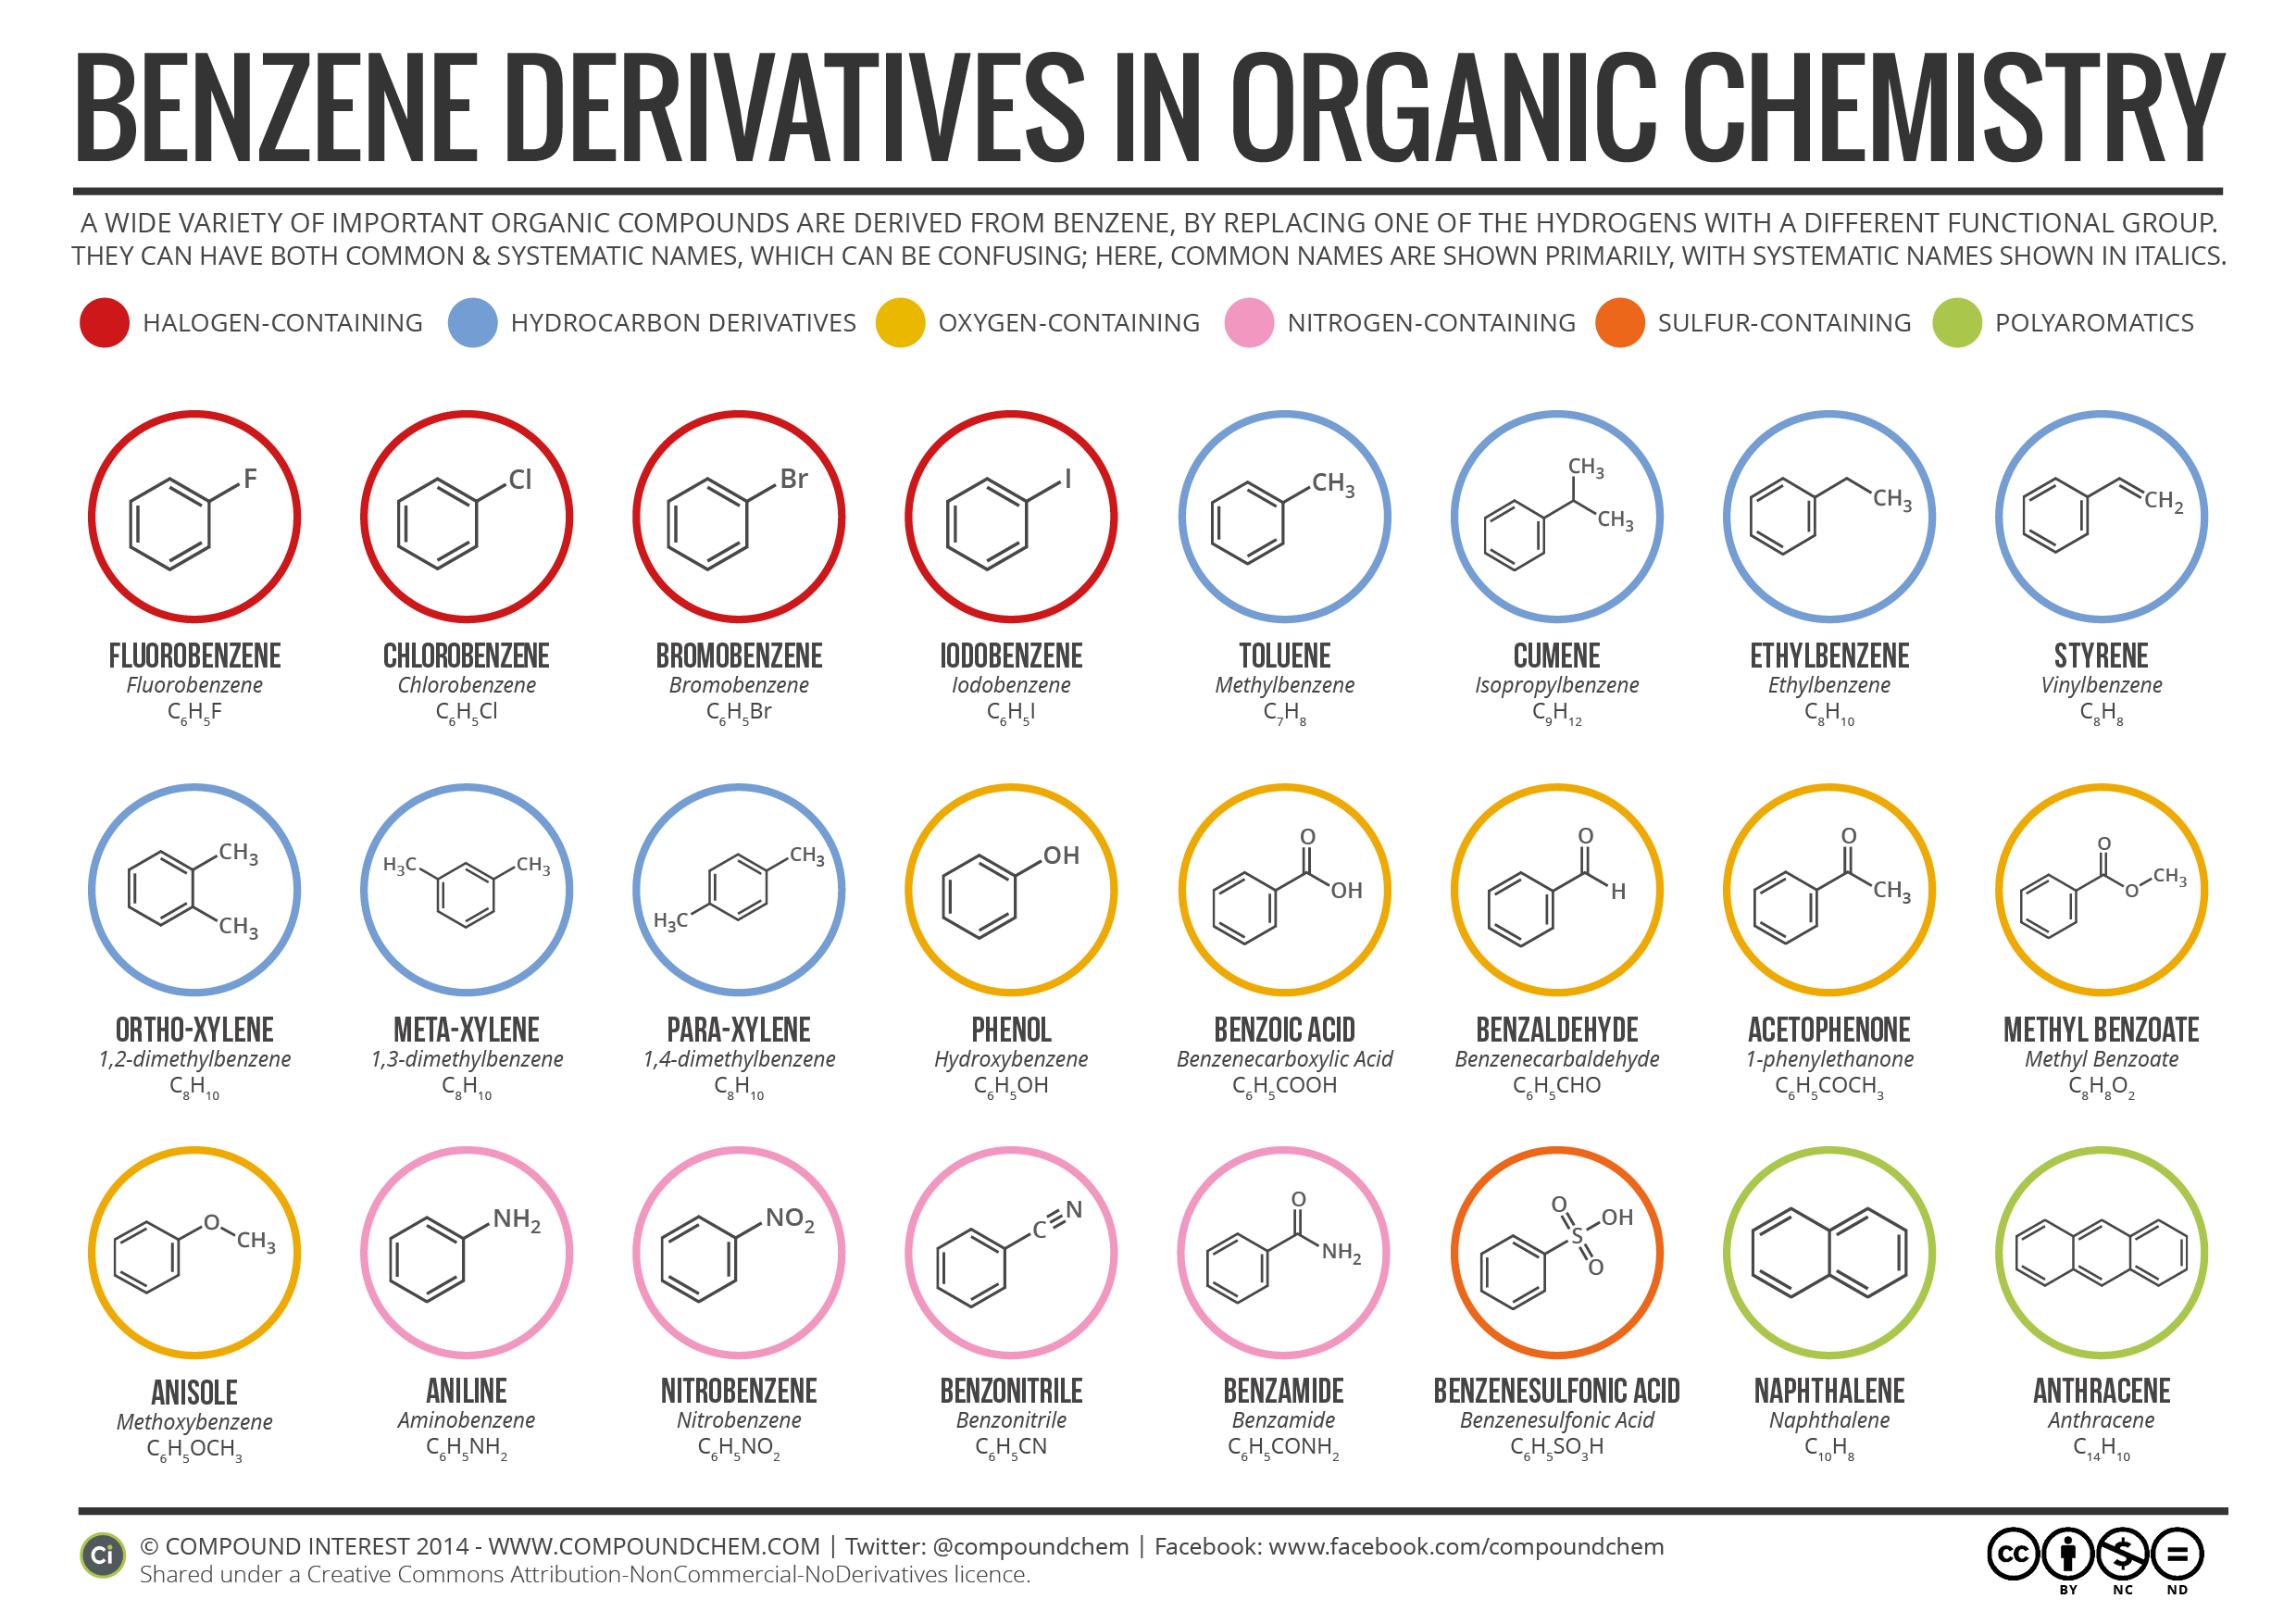 Simple Benzene Derivatives And Their Nomenclature In Organic Chemistry With Common Names